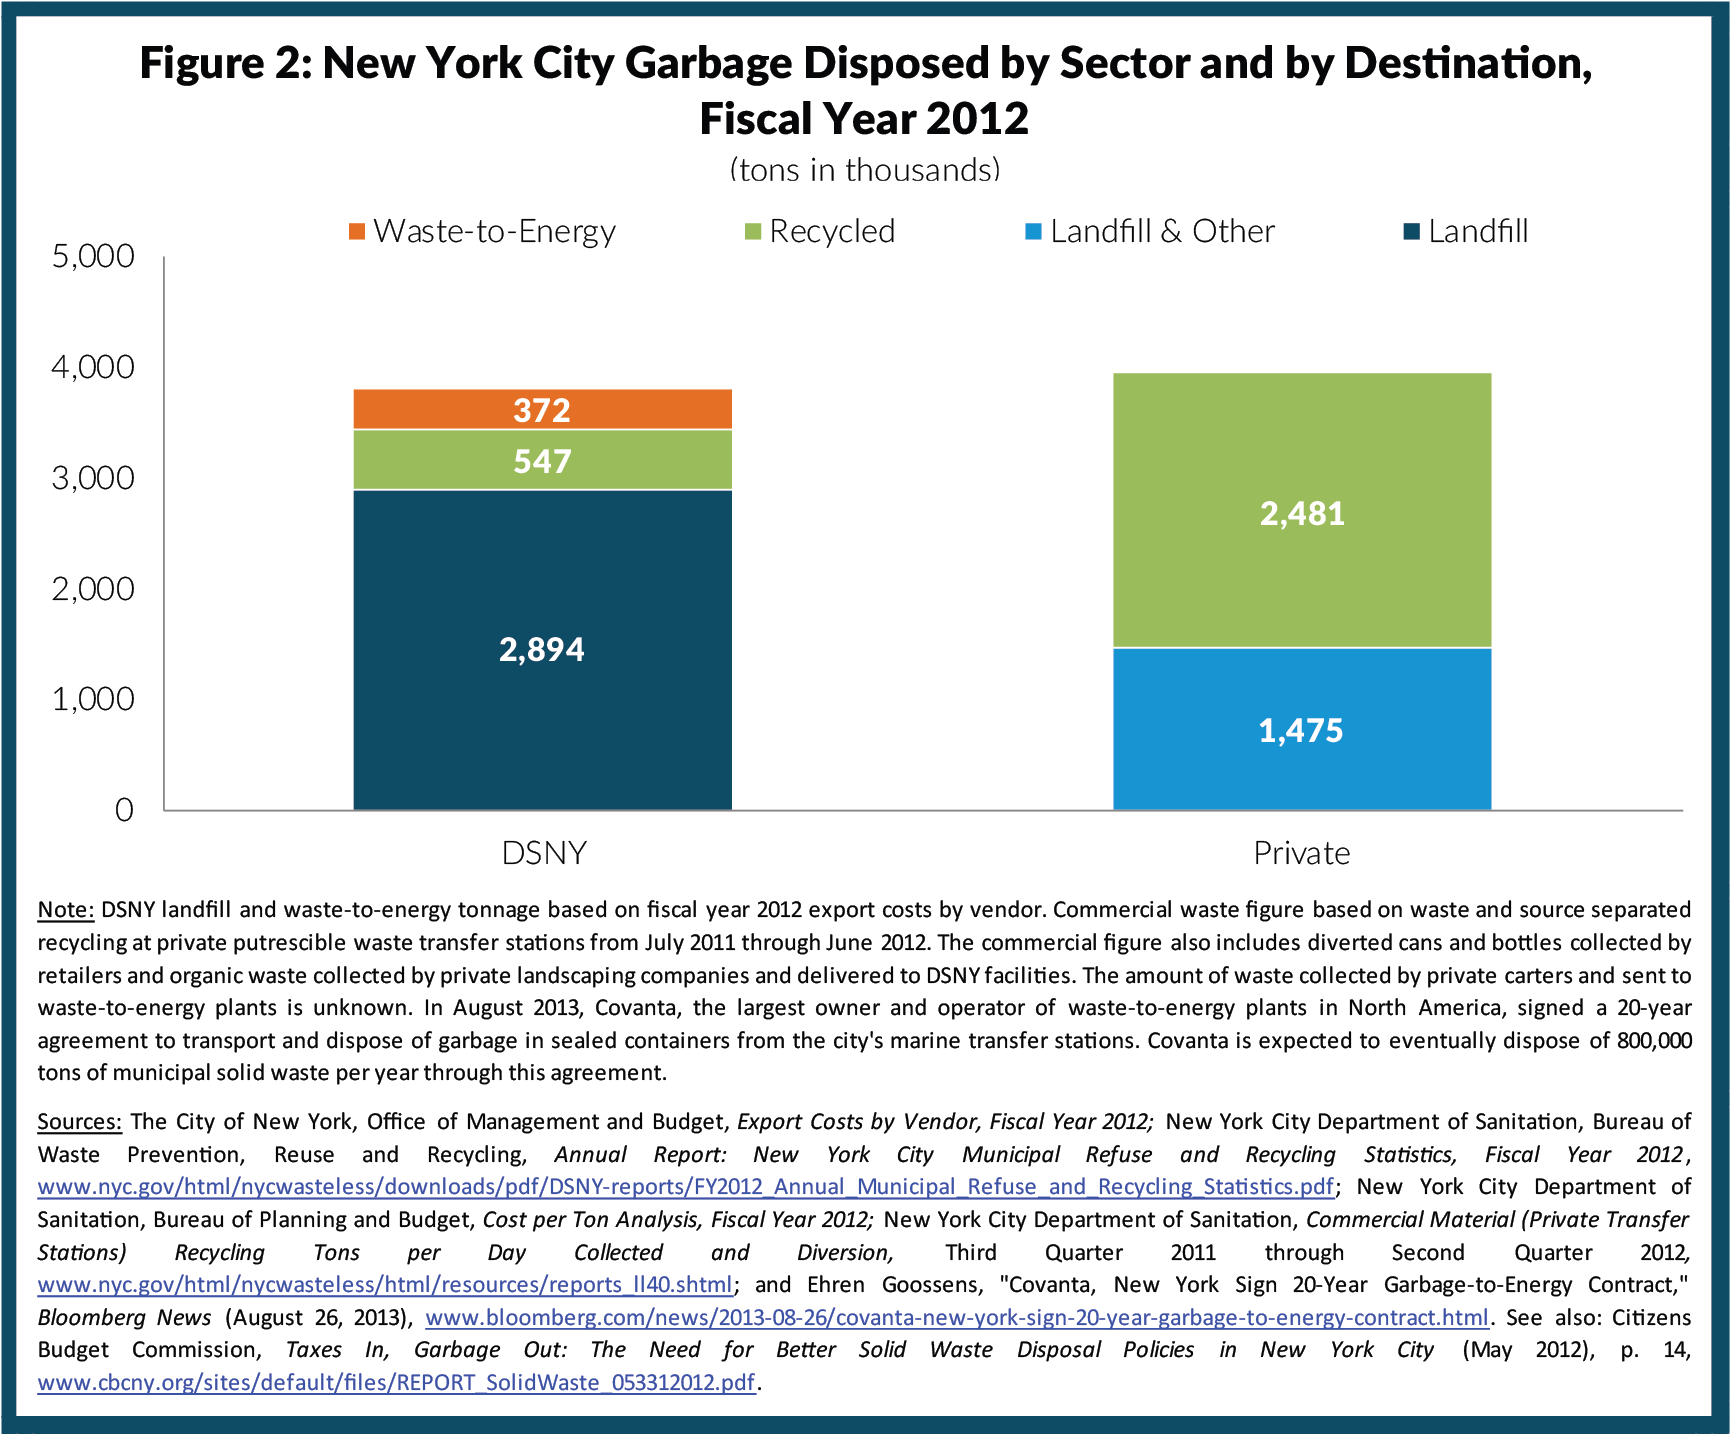 Figure 2: New York City Garbage Disposed by Sector and by Destination, Fiscal Year 2012